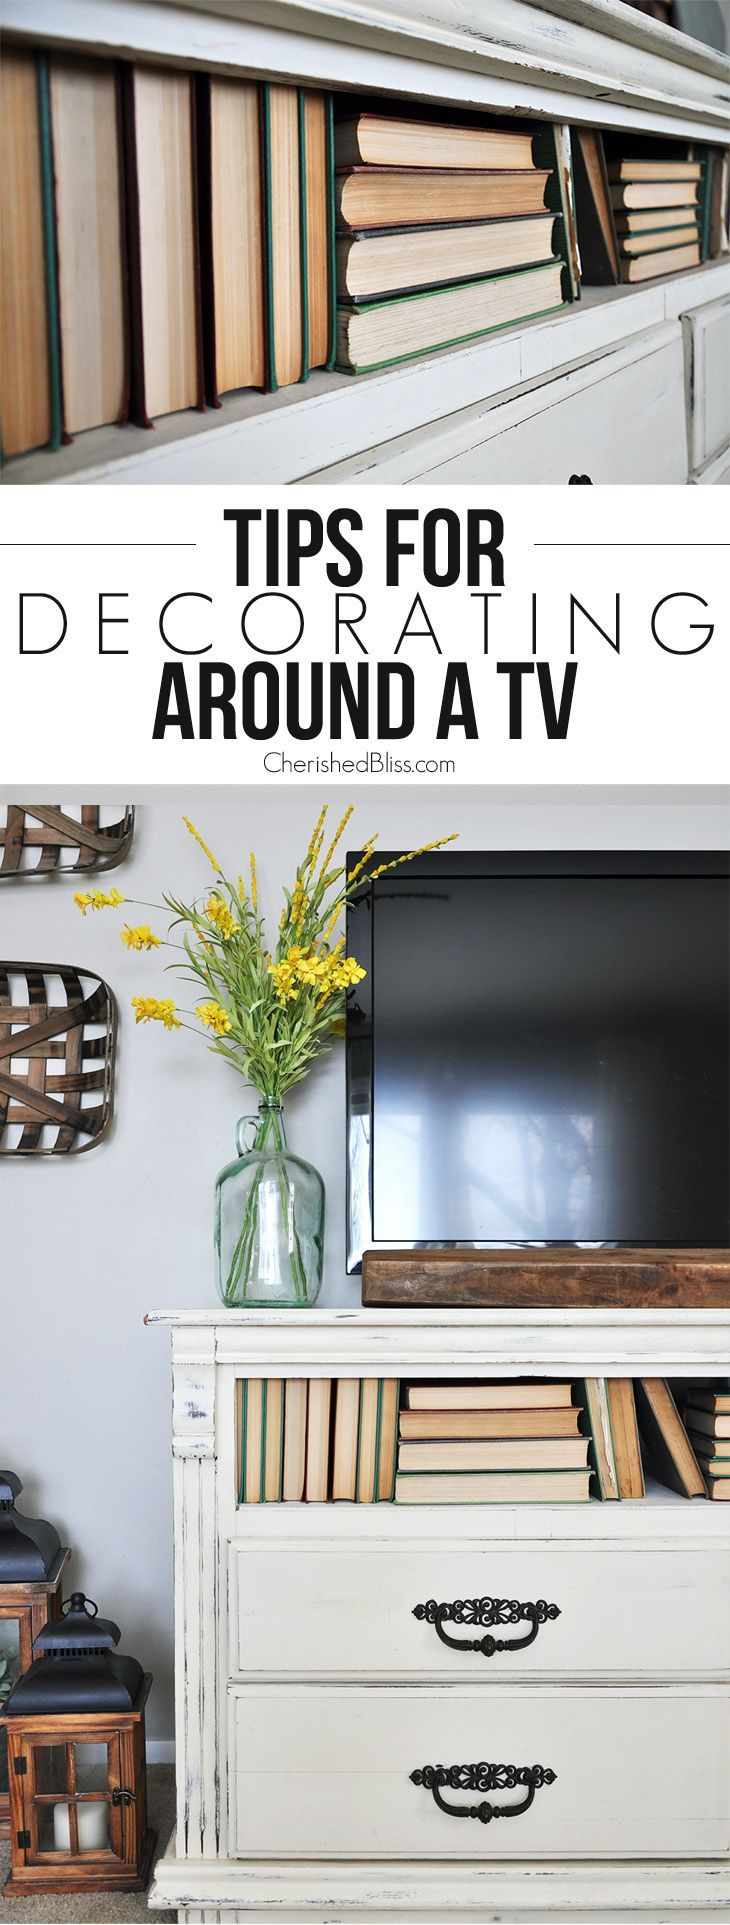 With these simple tips and tricks you will learn how to easily decorate around a tv